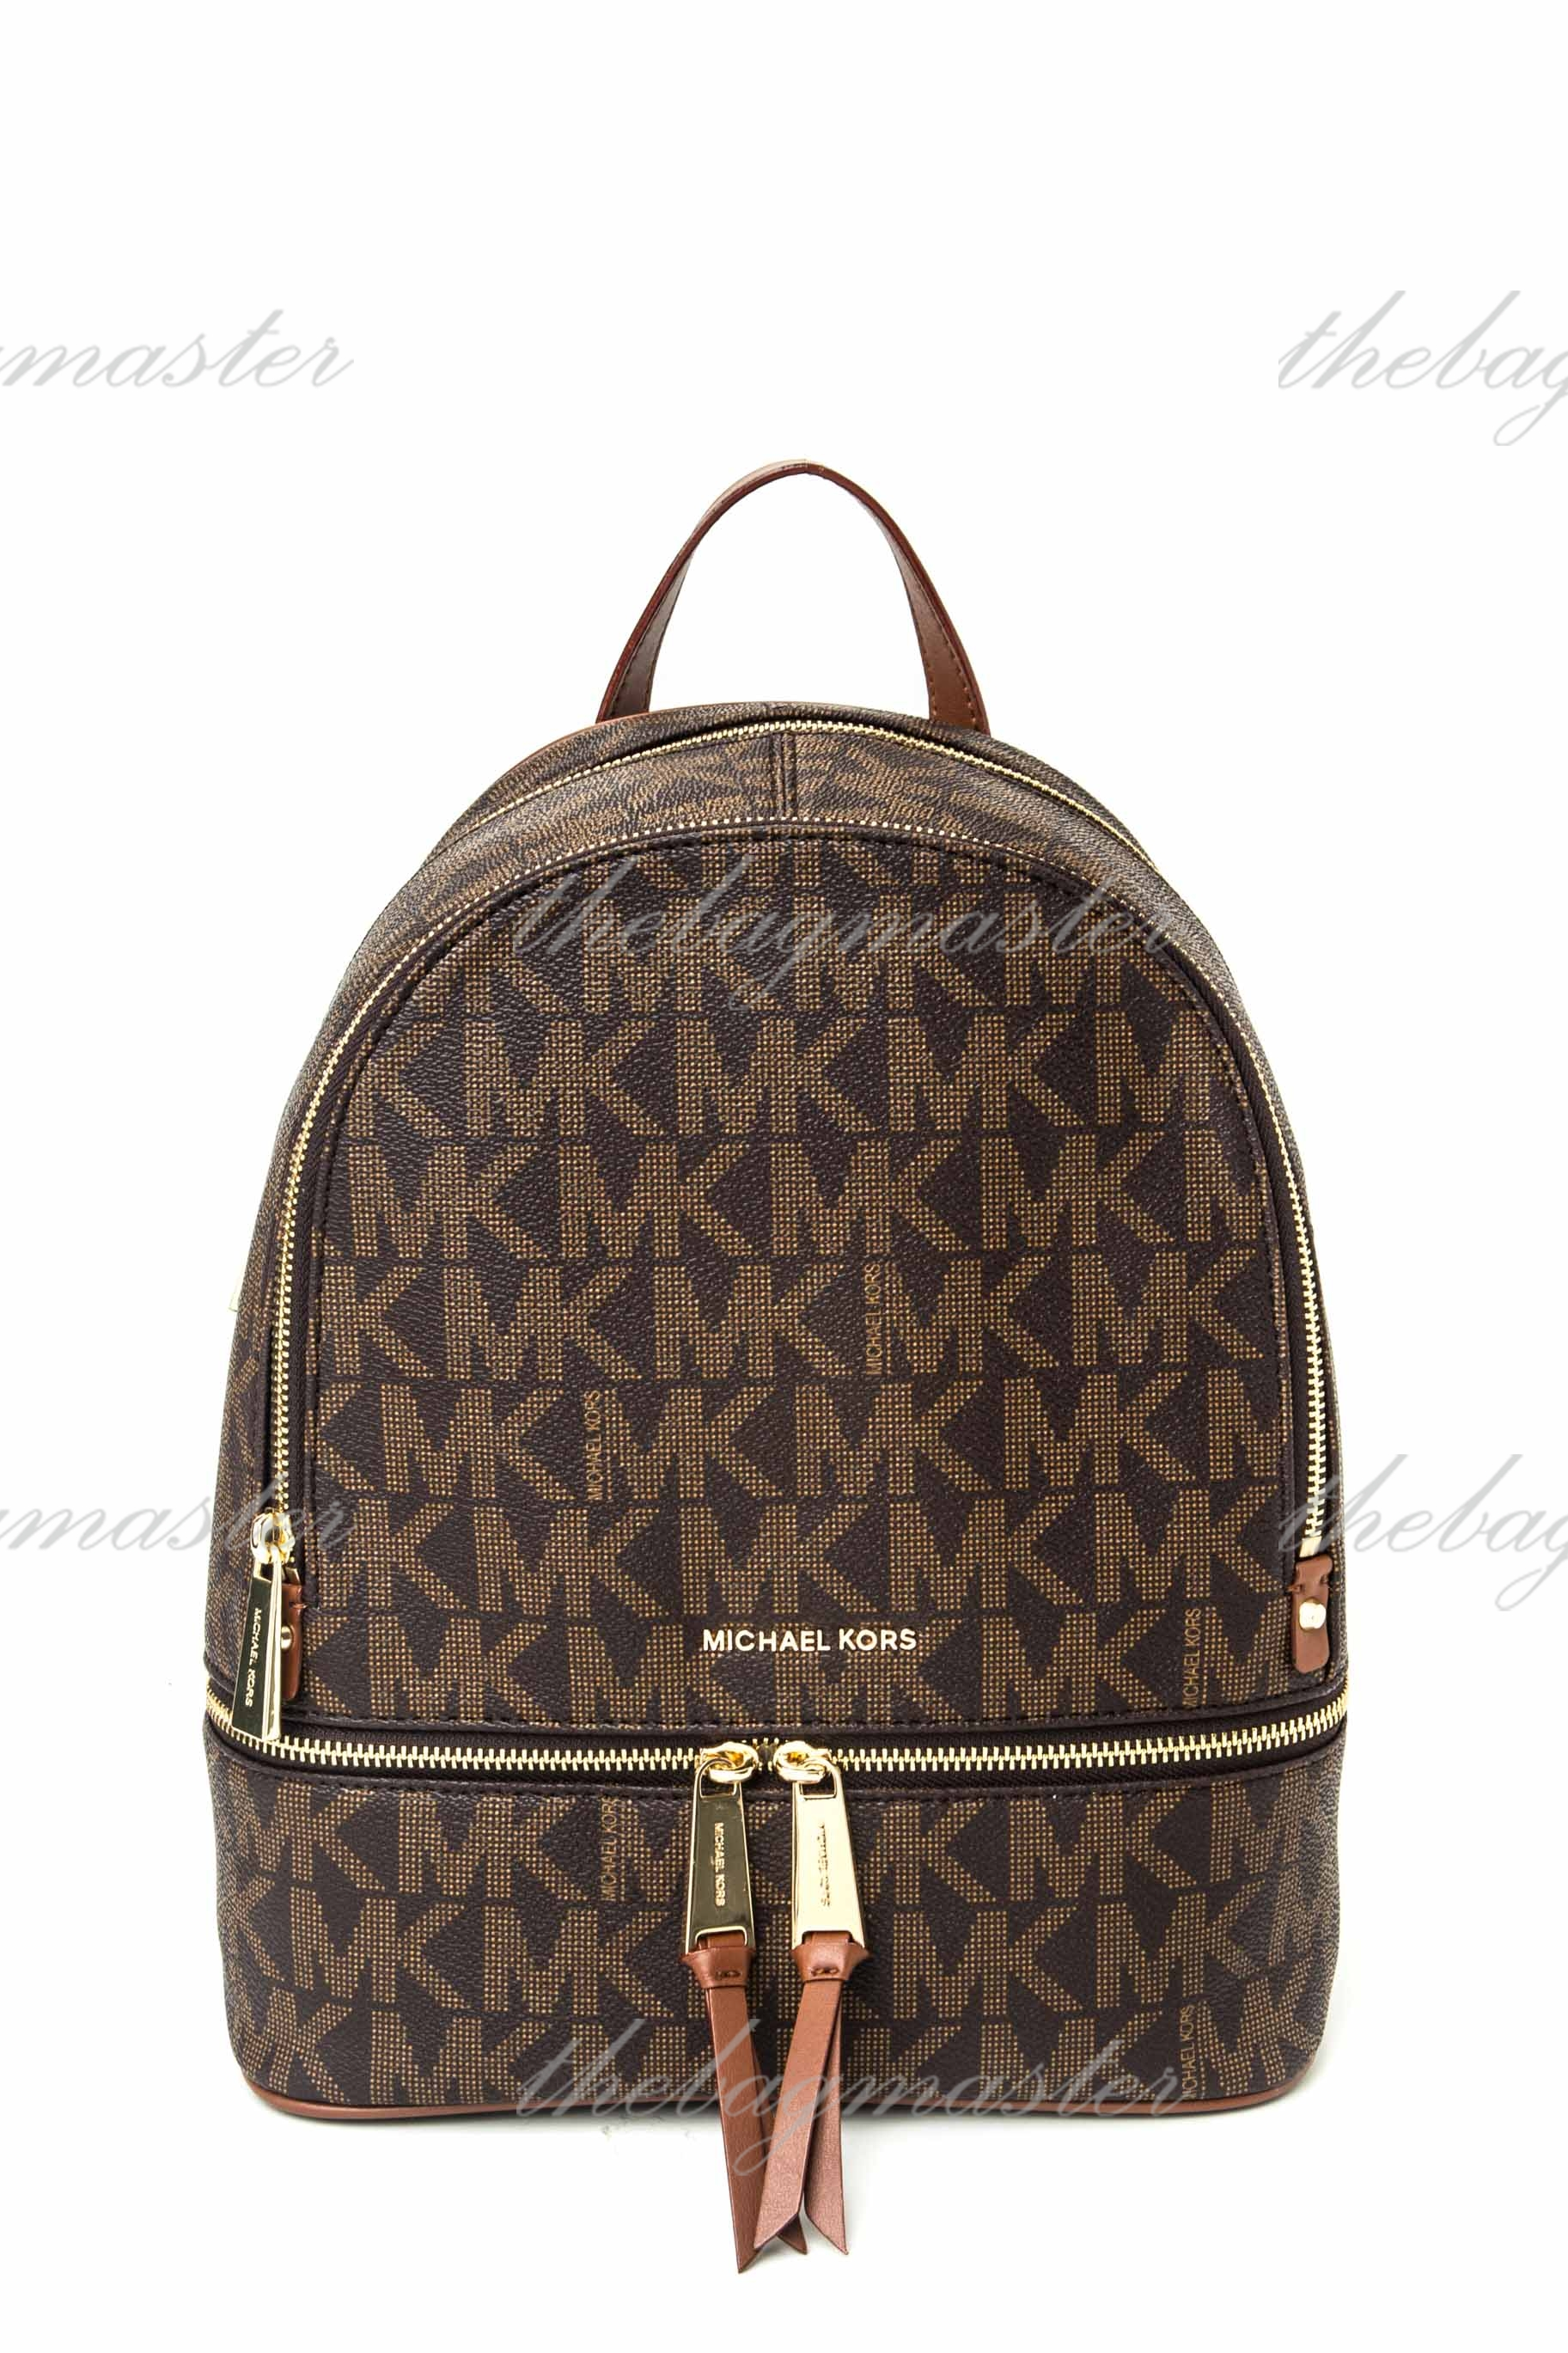 michael kors rhea leather monogram backpack luggage brown the rh thelifestylestore com ph